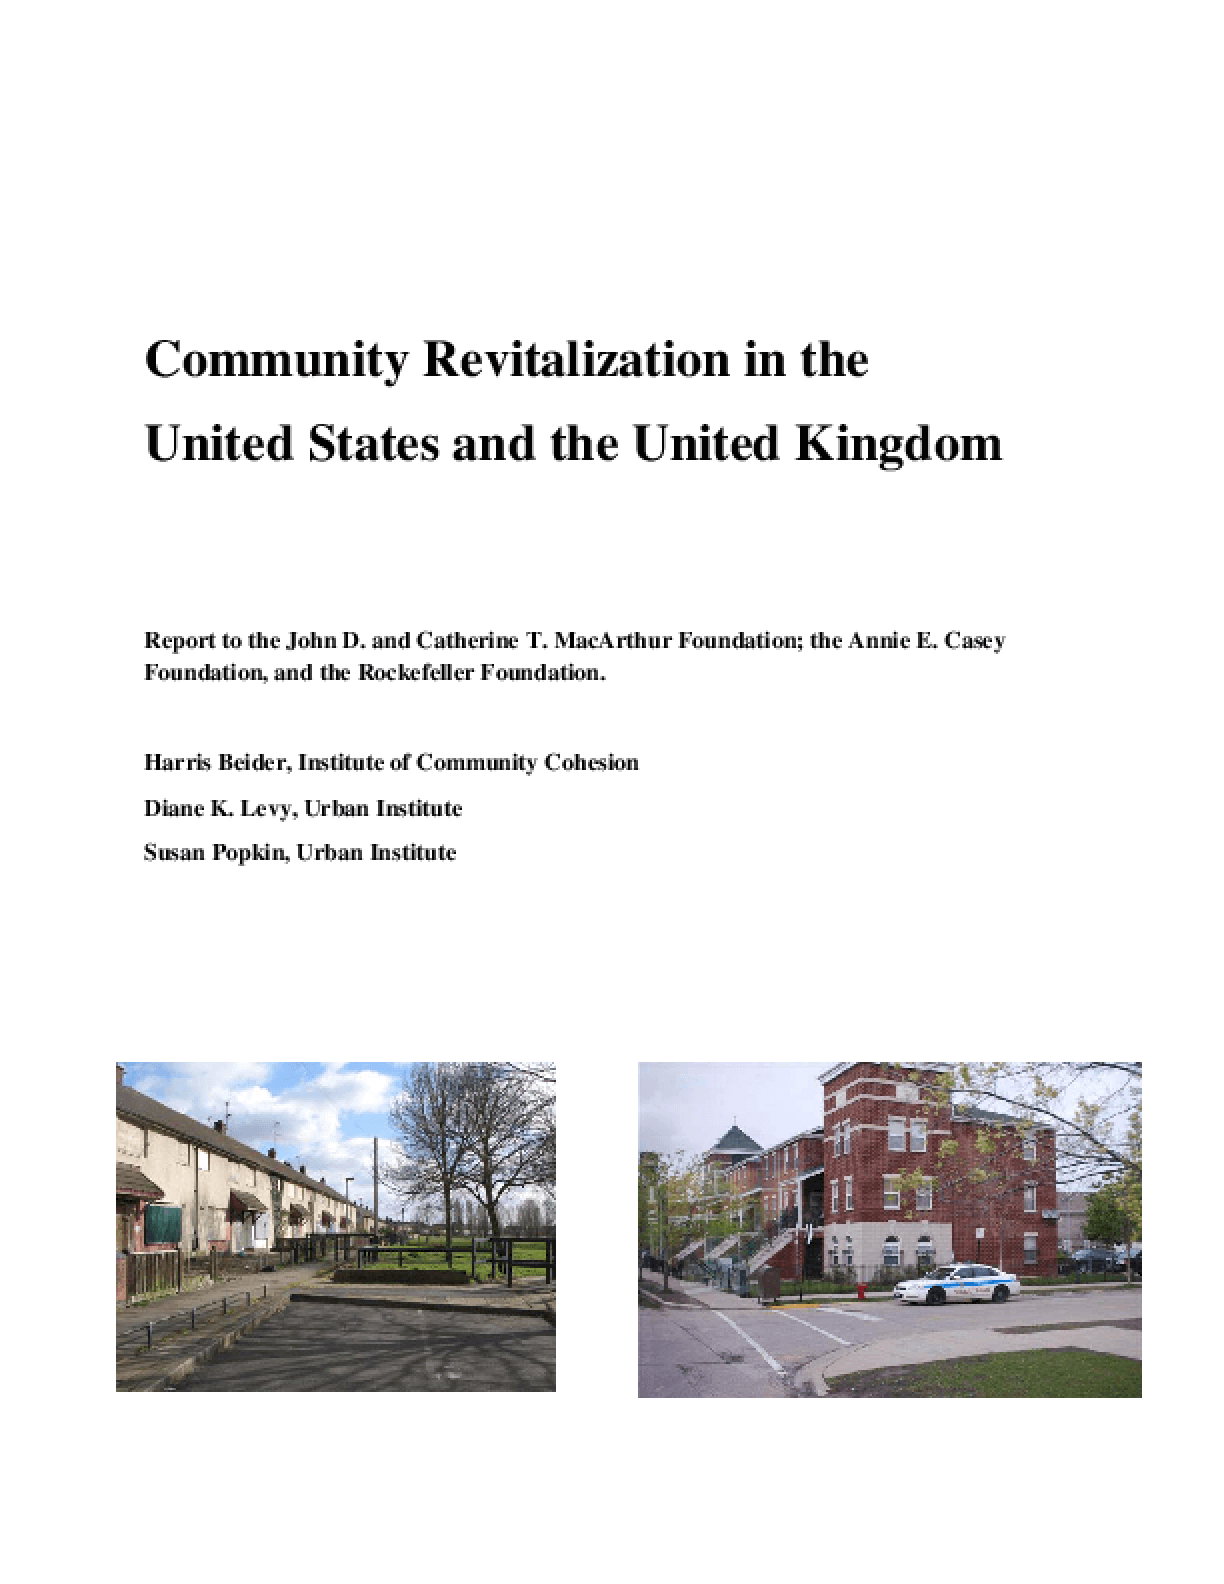 Community Revitalization in the United States and the United Kingdom